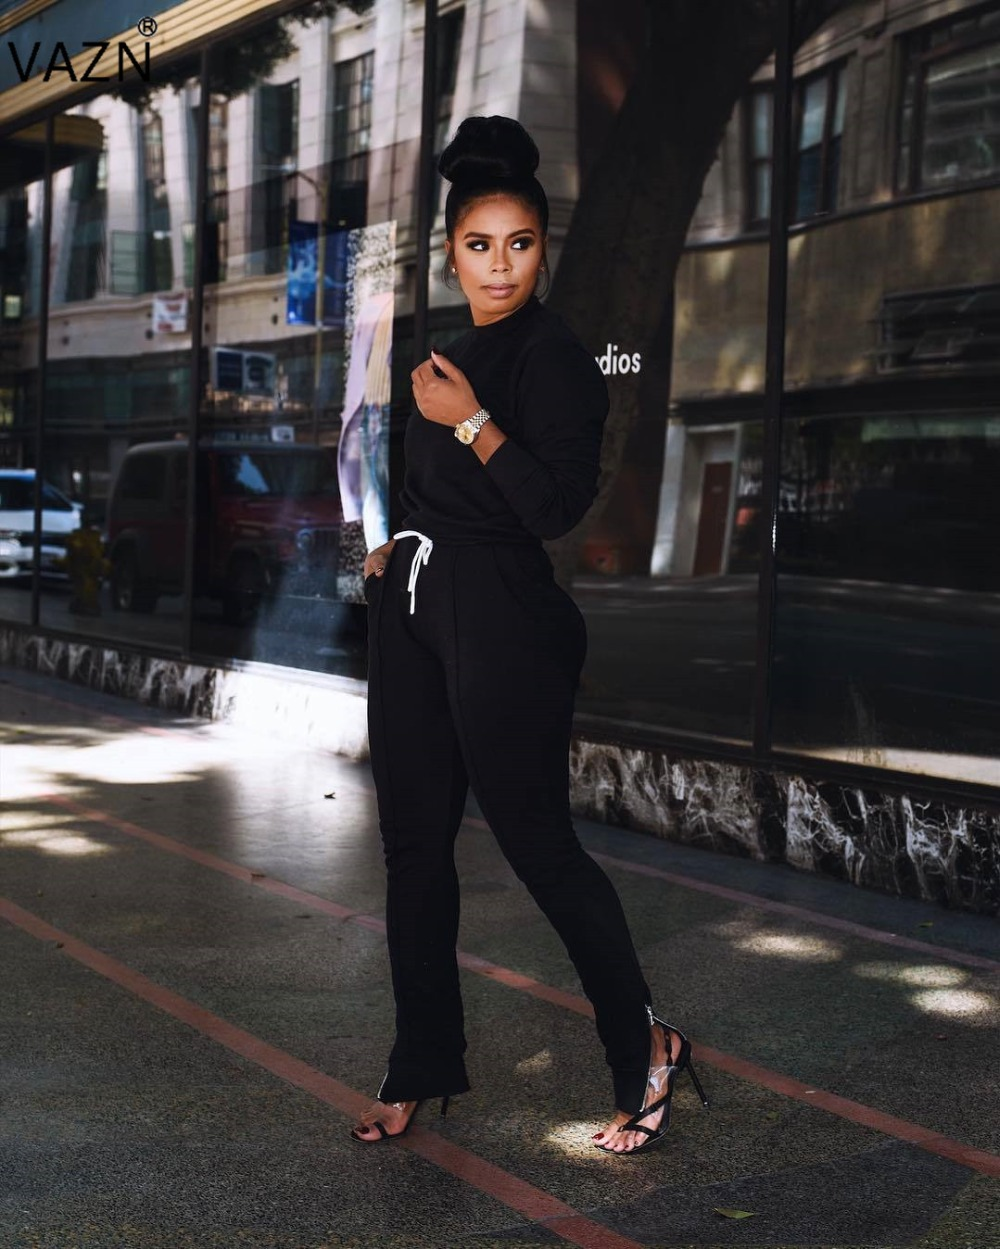 VAZN 2018 Hot Fashion Casual Solid 2-Pieces Hollow Out  Sets Ladies O-Neck Full Sleeve Tops Full Length Pants Tracksuits ARM8028